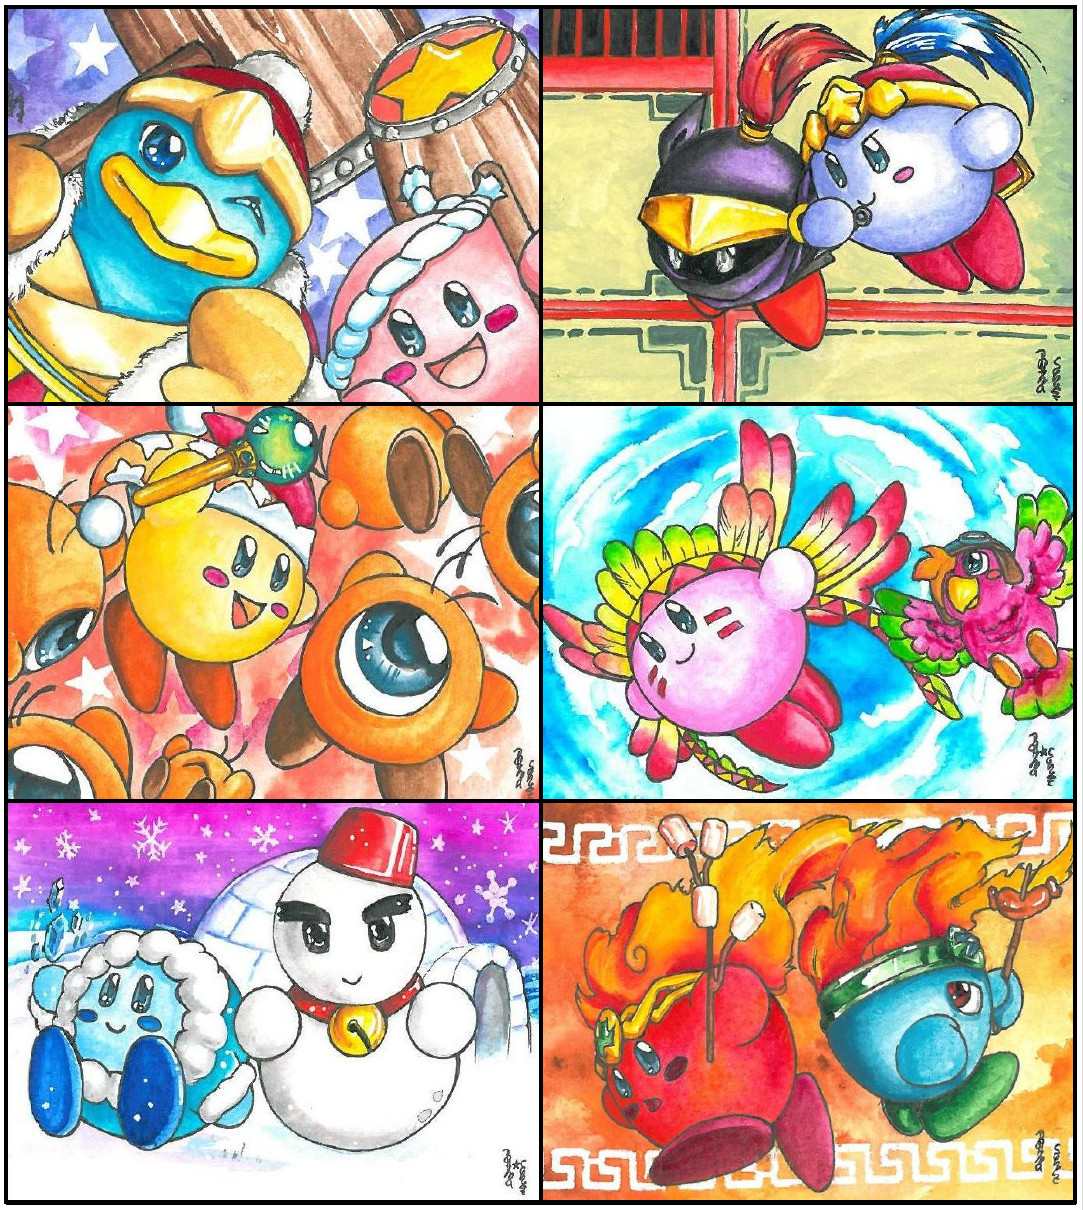 kirbys copying power 1 by ravenoath